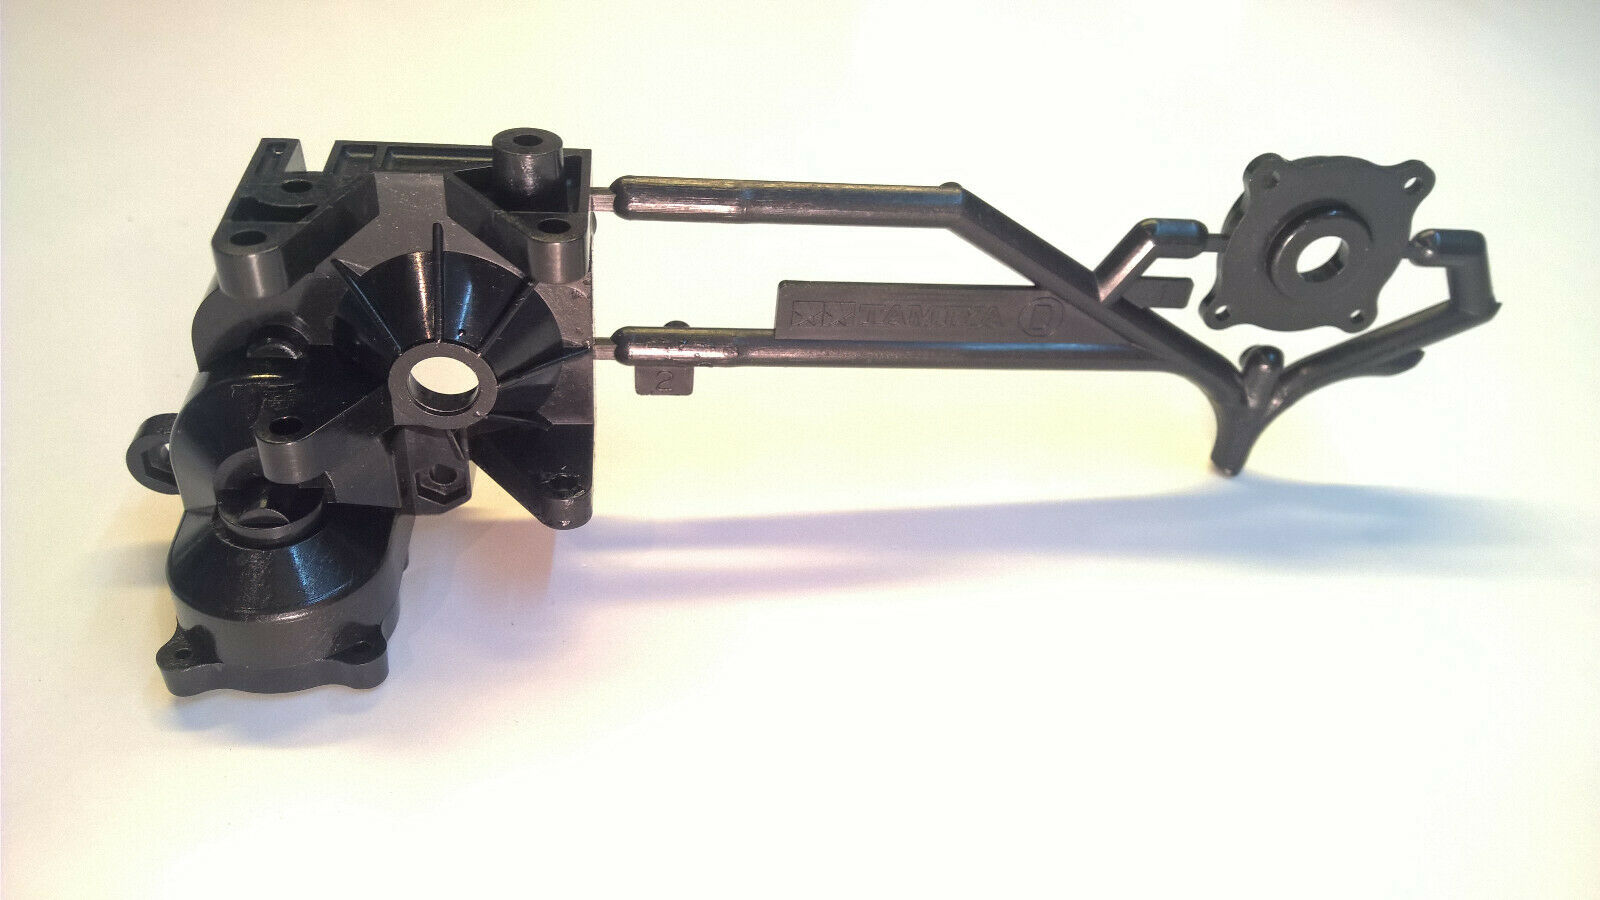 Vintage 58059 Tamiya Porsche 959 Rare Gearbox Front Right Side D2 and Cover D1